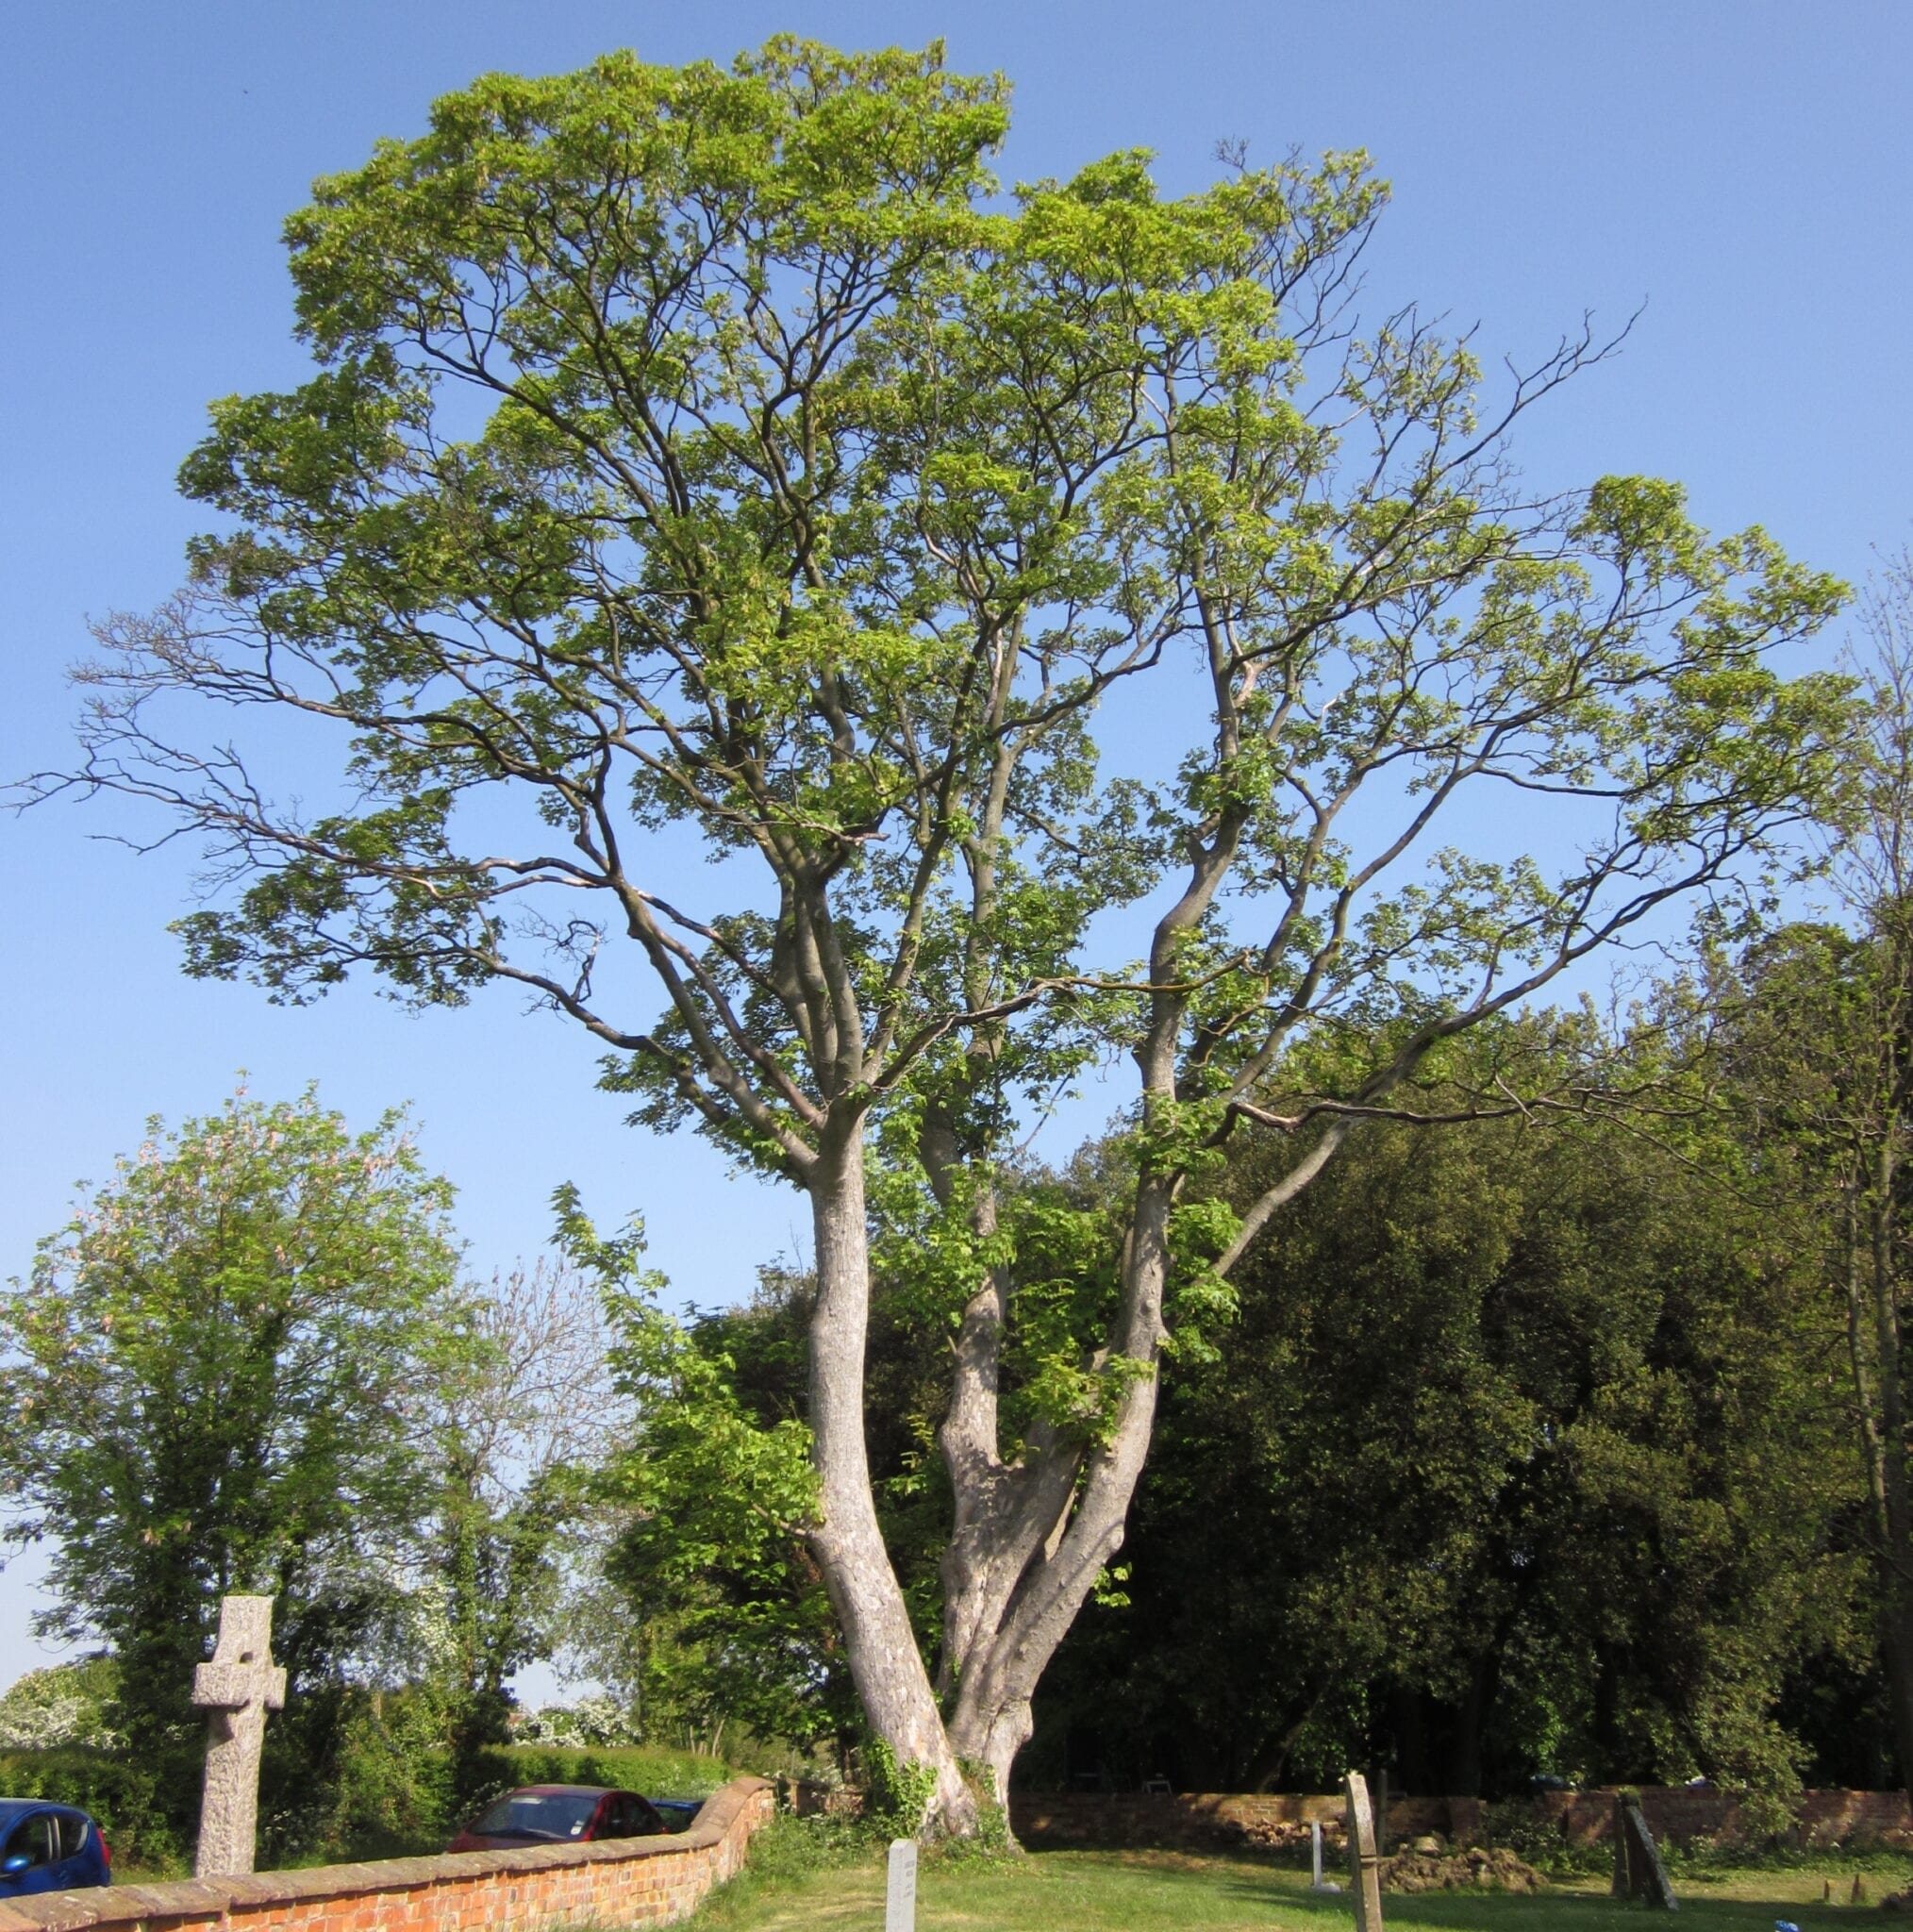 Sycamore mature tree